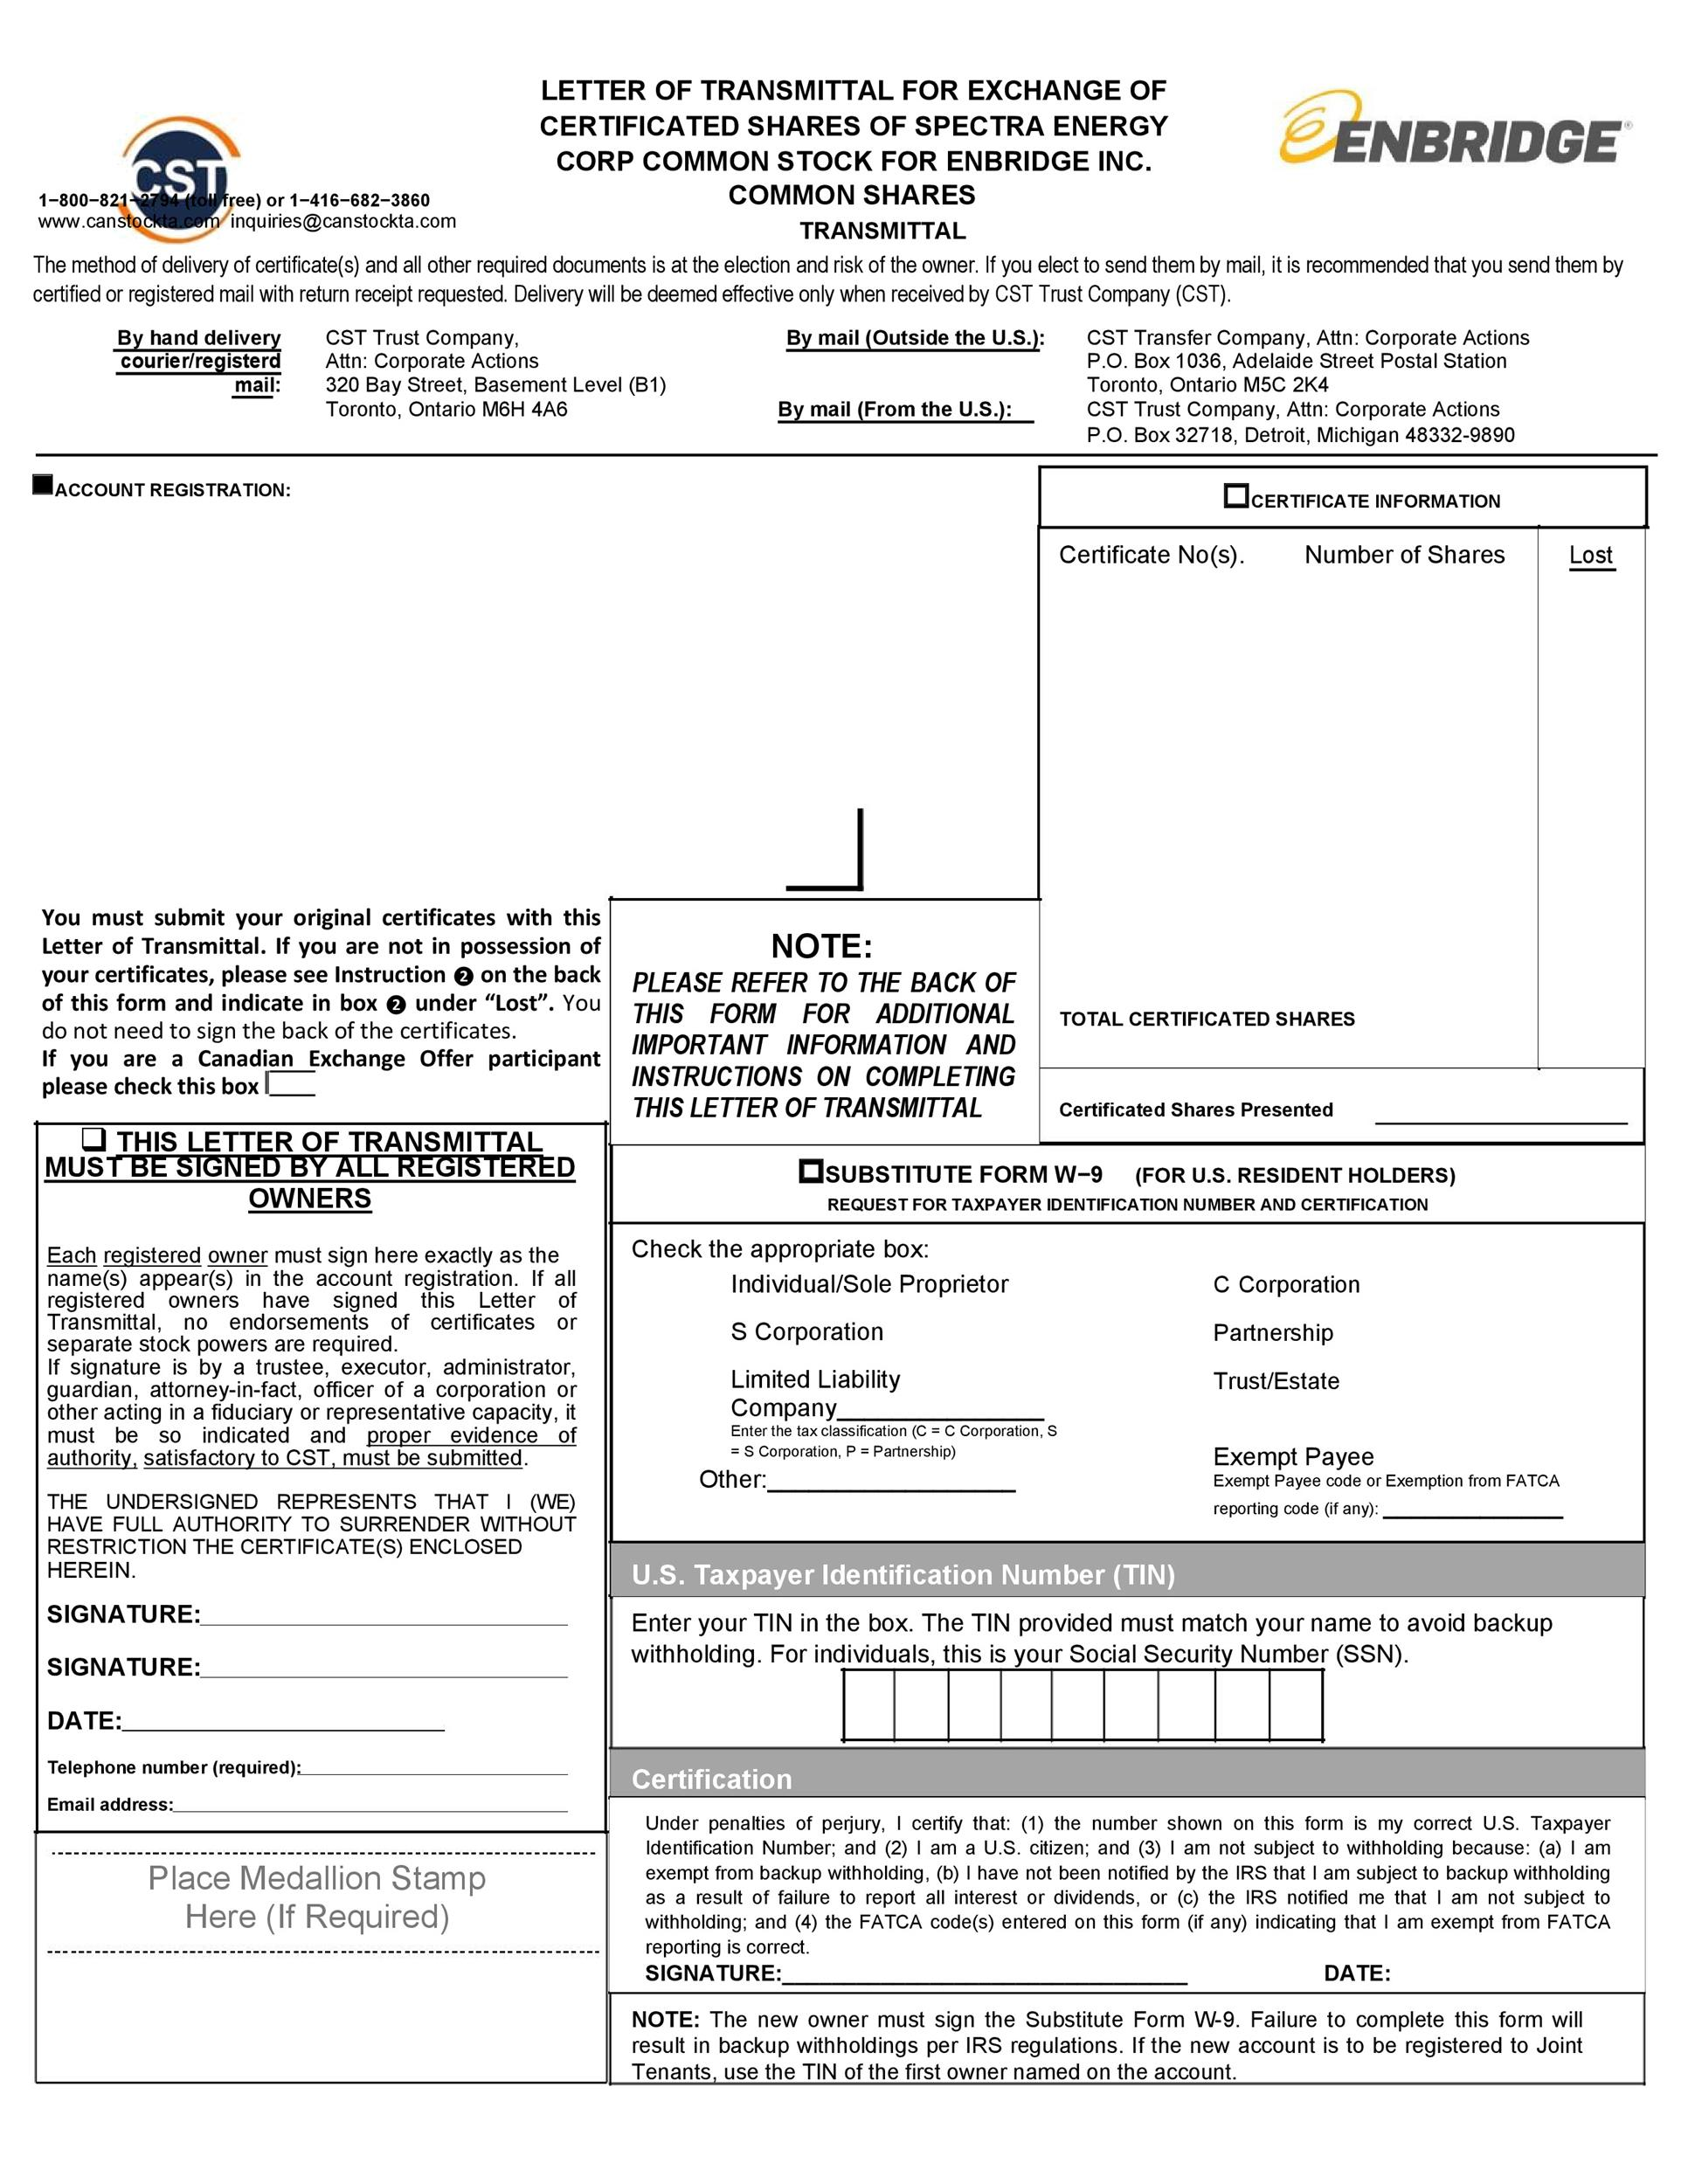 Free letter of transmittal template 30